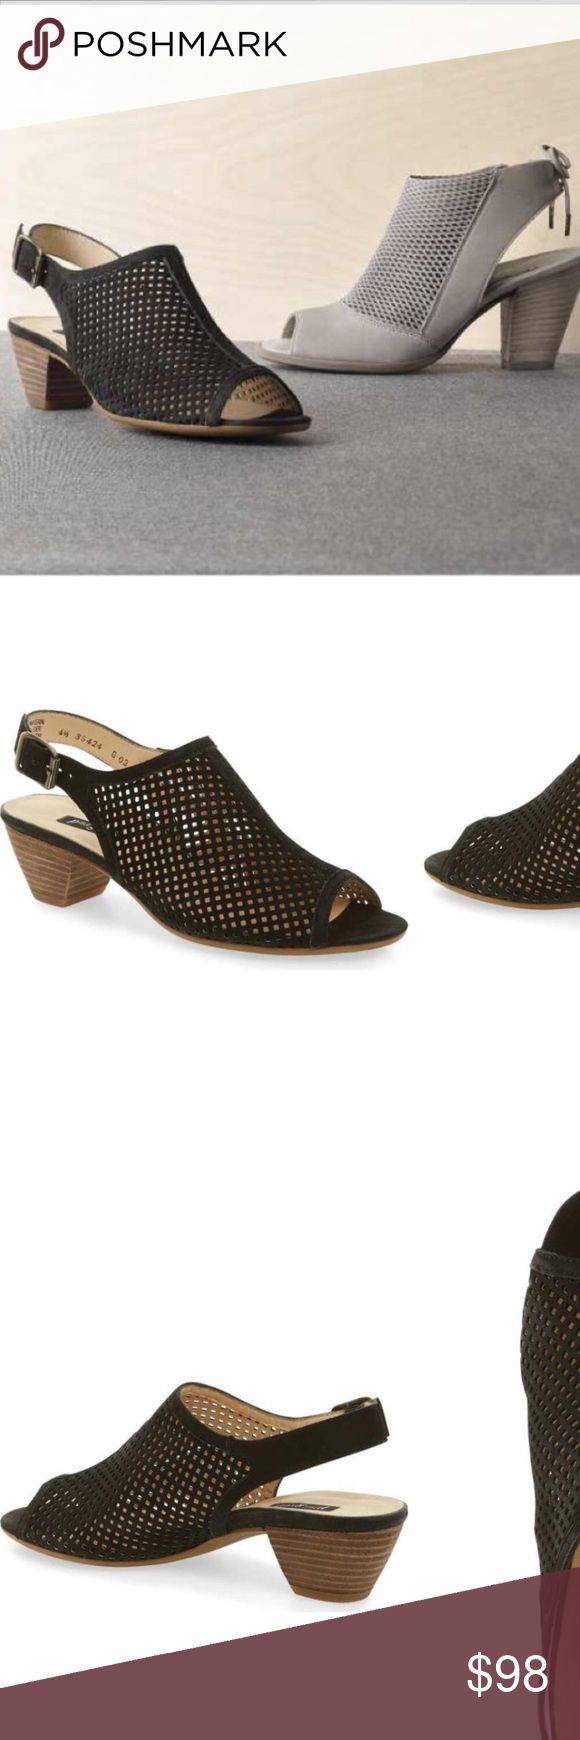 Paul Green Luis slingback shoes Like new in perfect condition. Paul green extremely comfy laser cut black top genuine leather shoes. Hand made. True to size U.K. 7 US 9 Paul Green Shoes